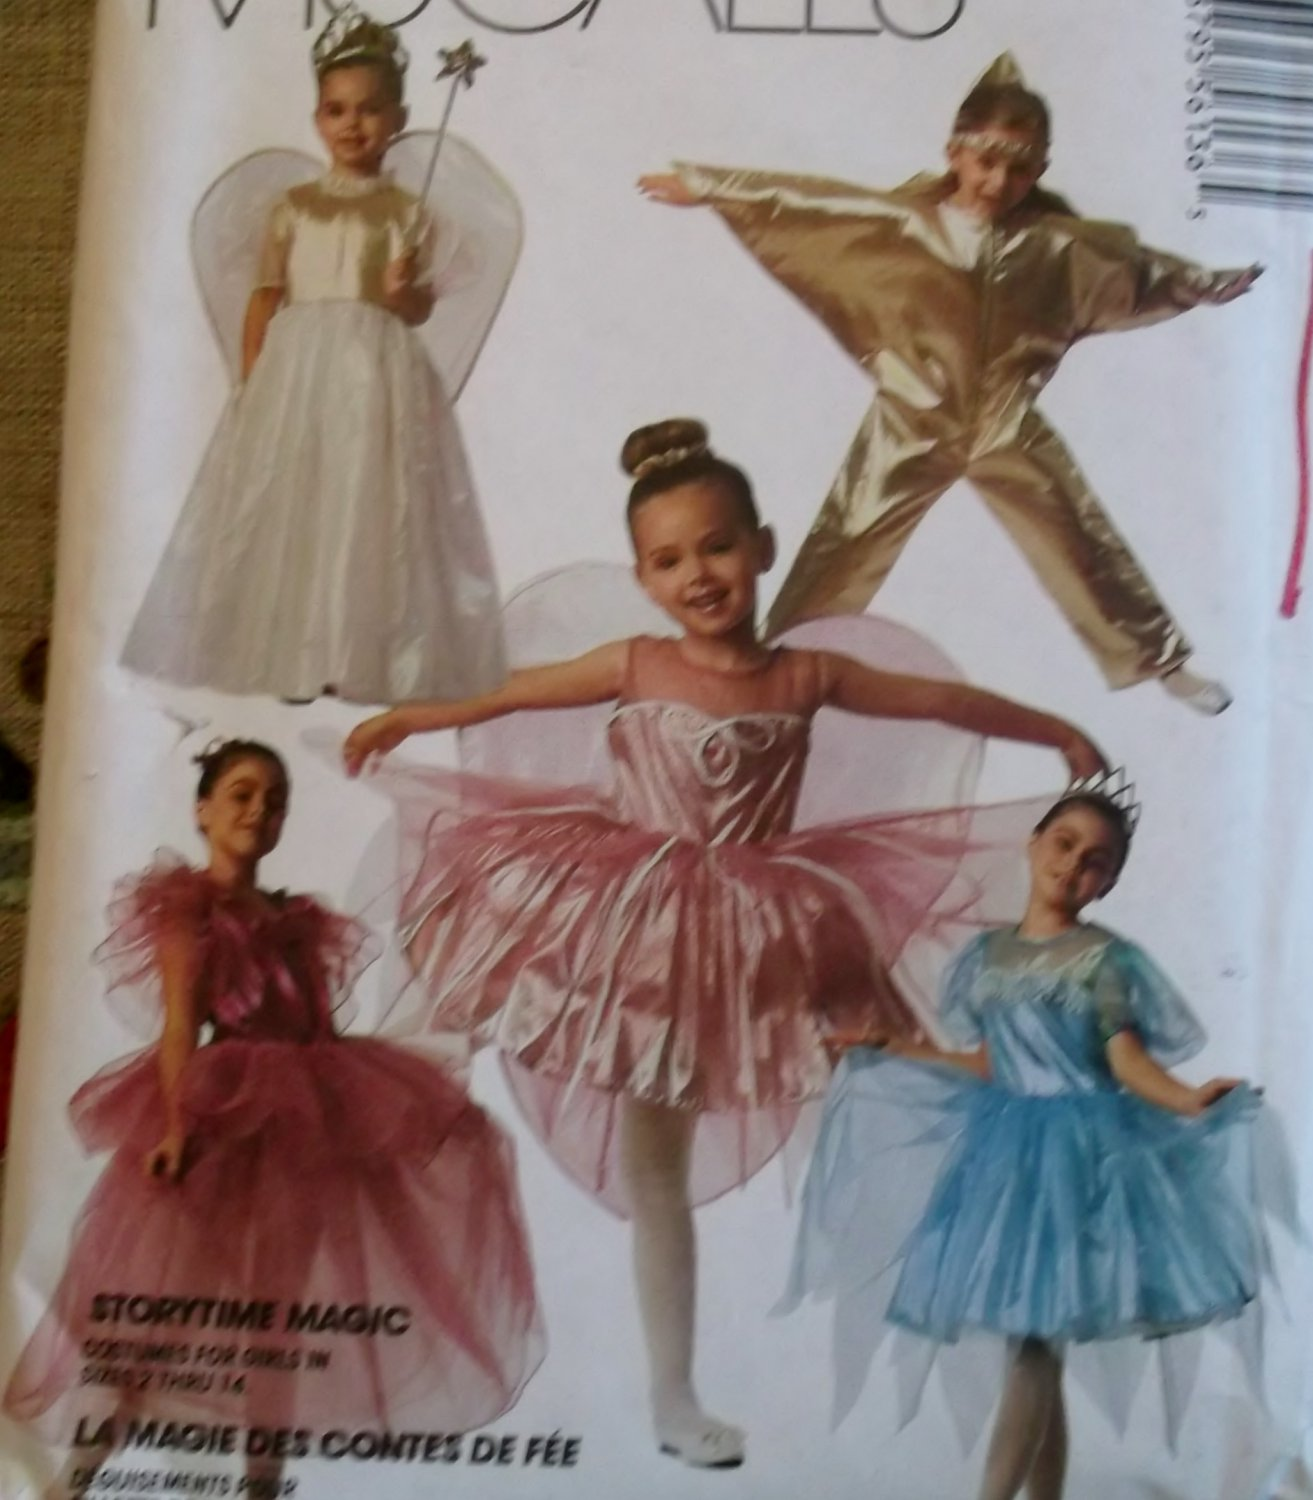 Mccalls 5613 Childs Storybook Costumes, Sizes 12, 14, UNCUT